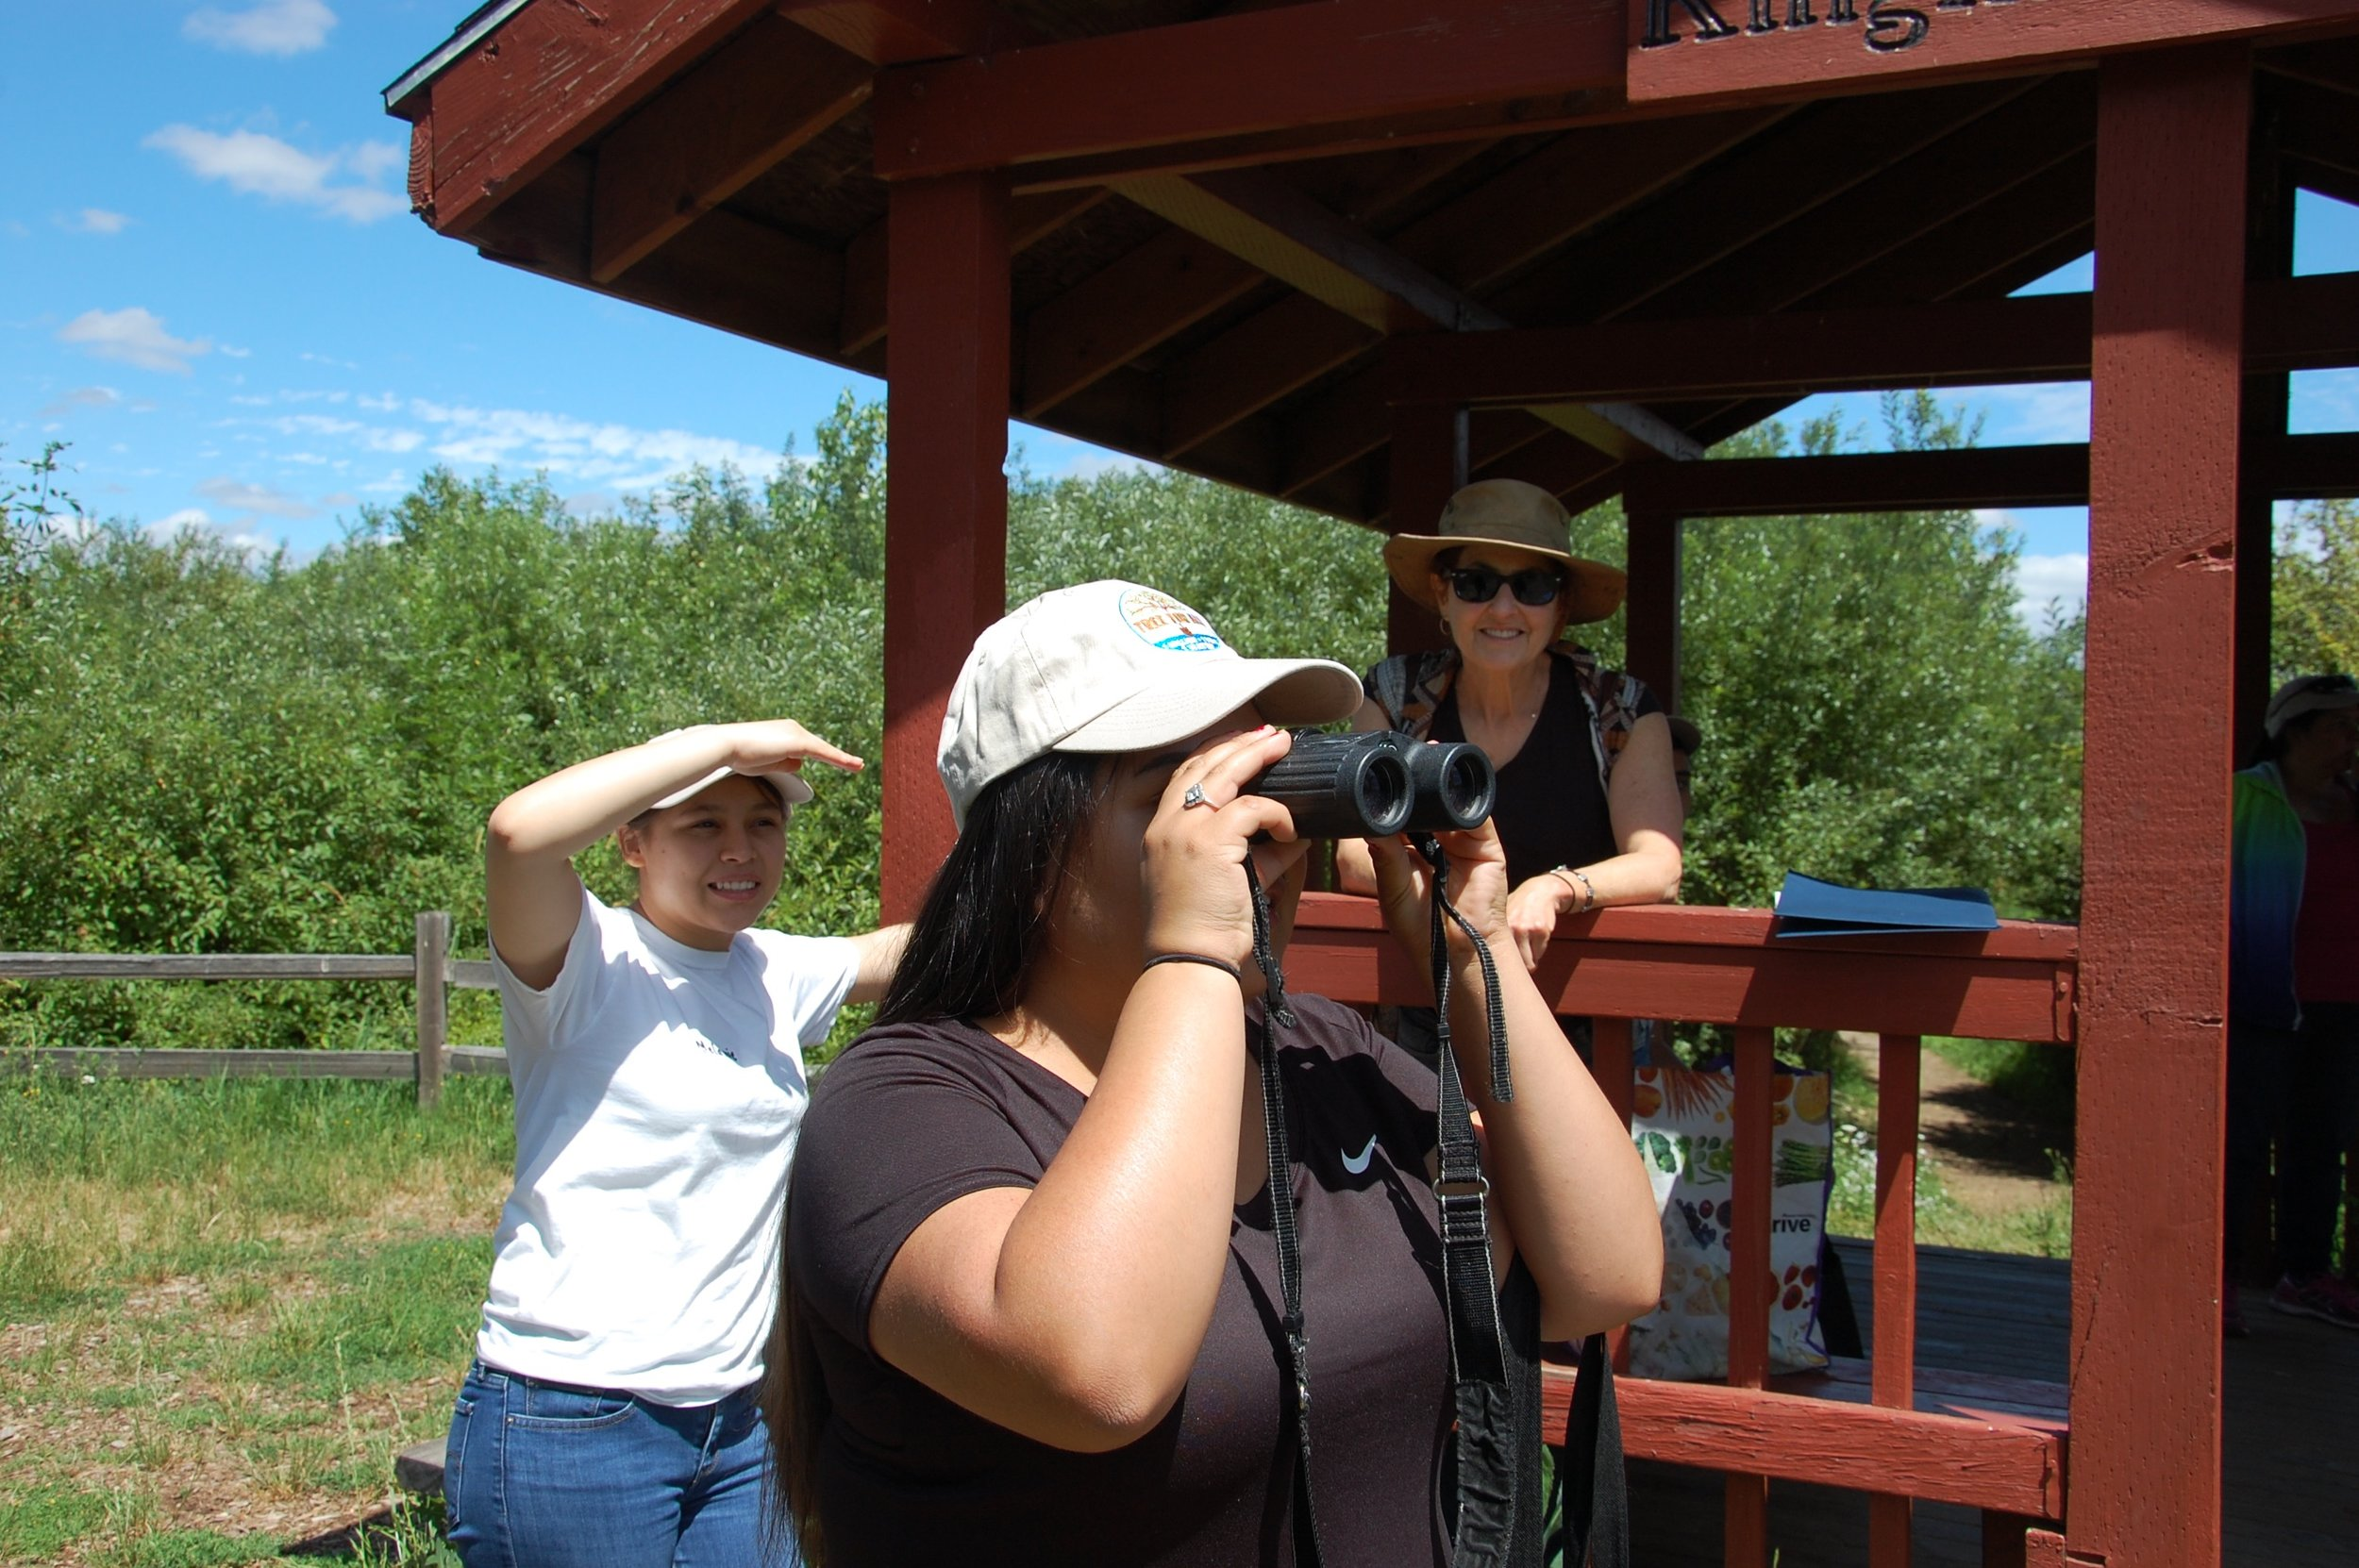 A Bilingual Naturalist, Karla, peers through binoculars at a bald eagle soaring above Fernhill Lake while others cool off in the shade.